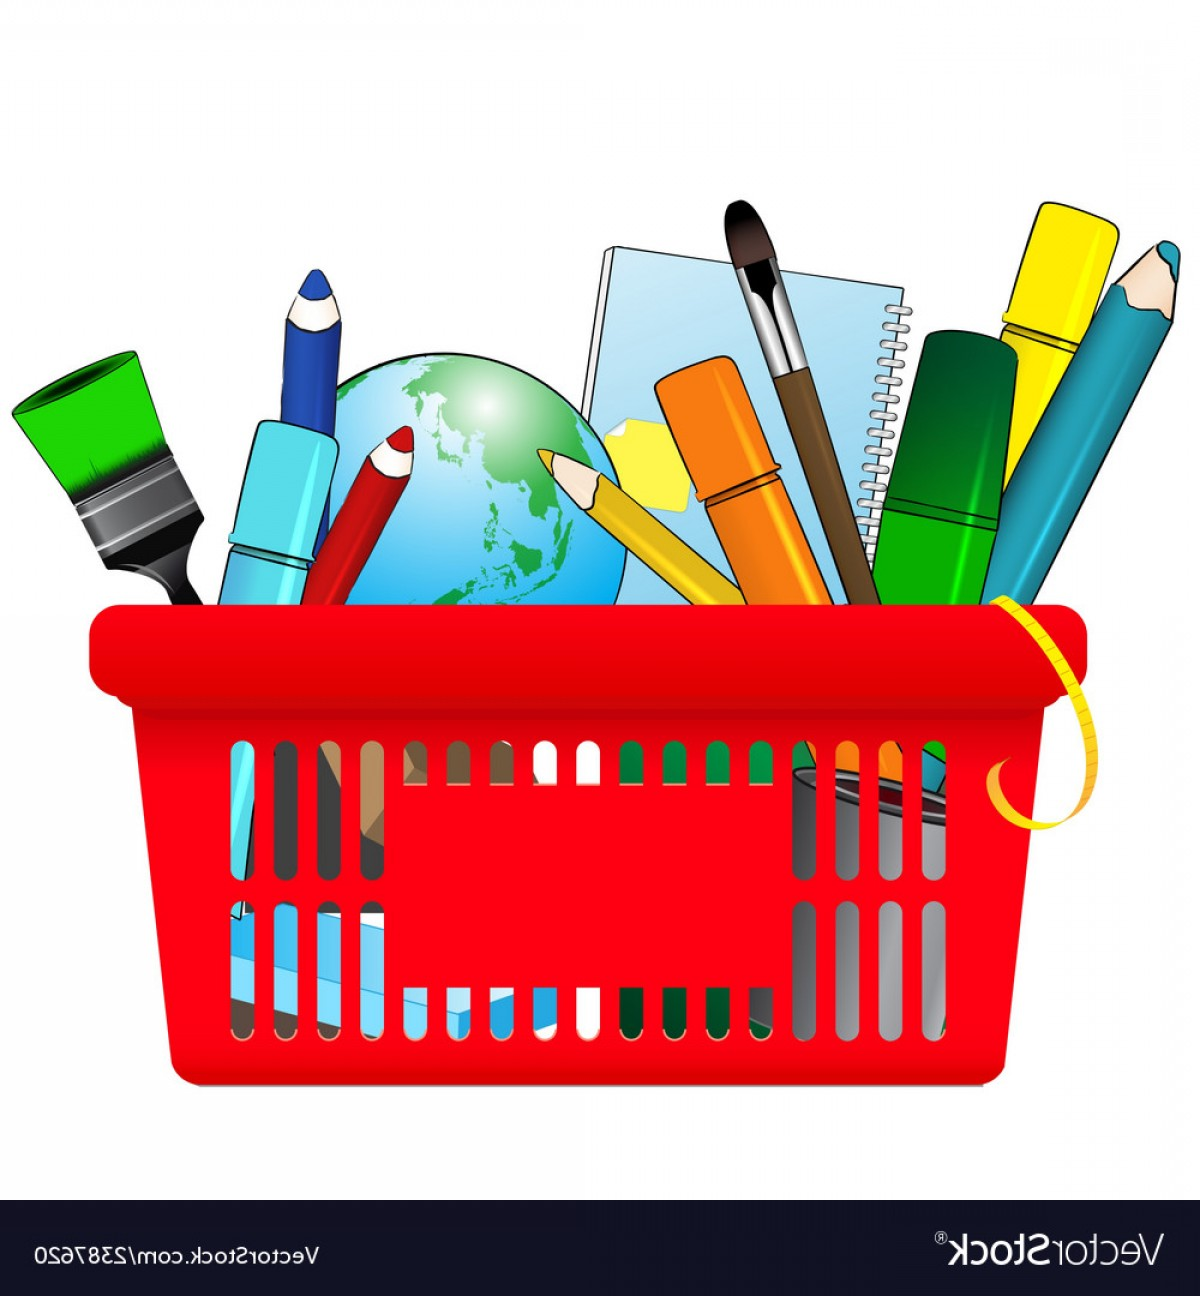 Supplies Vector Graphic: Shopping Card With School Supplies Vector